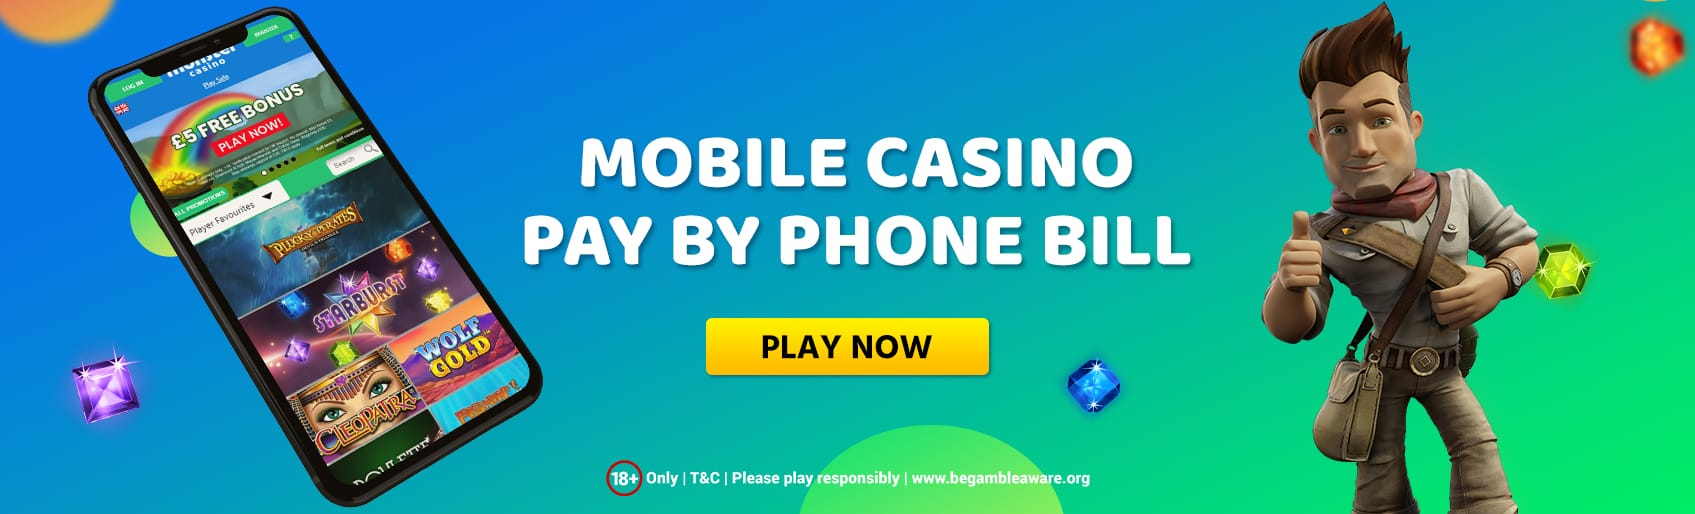 Pros of Pay by Mobile Casino